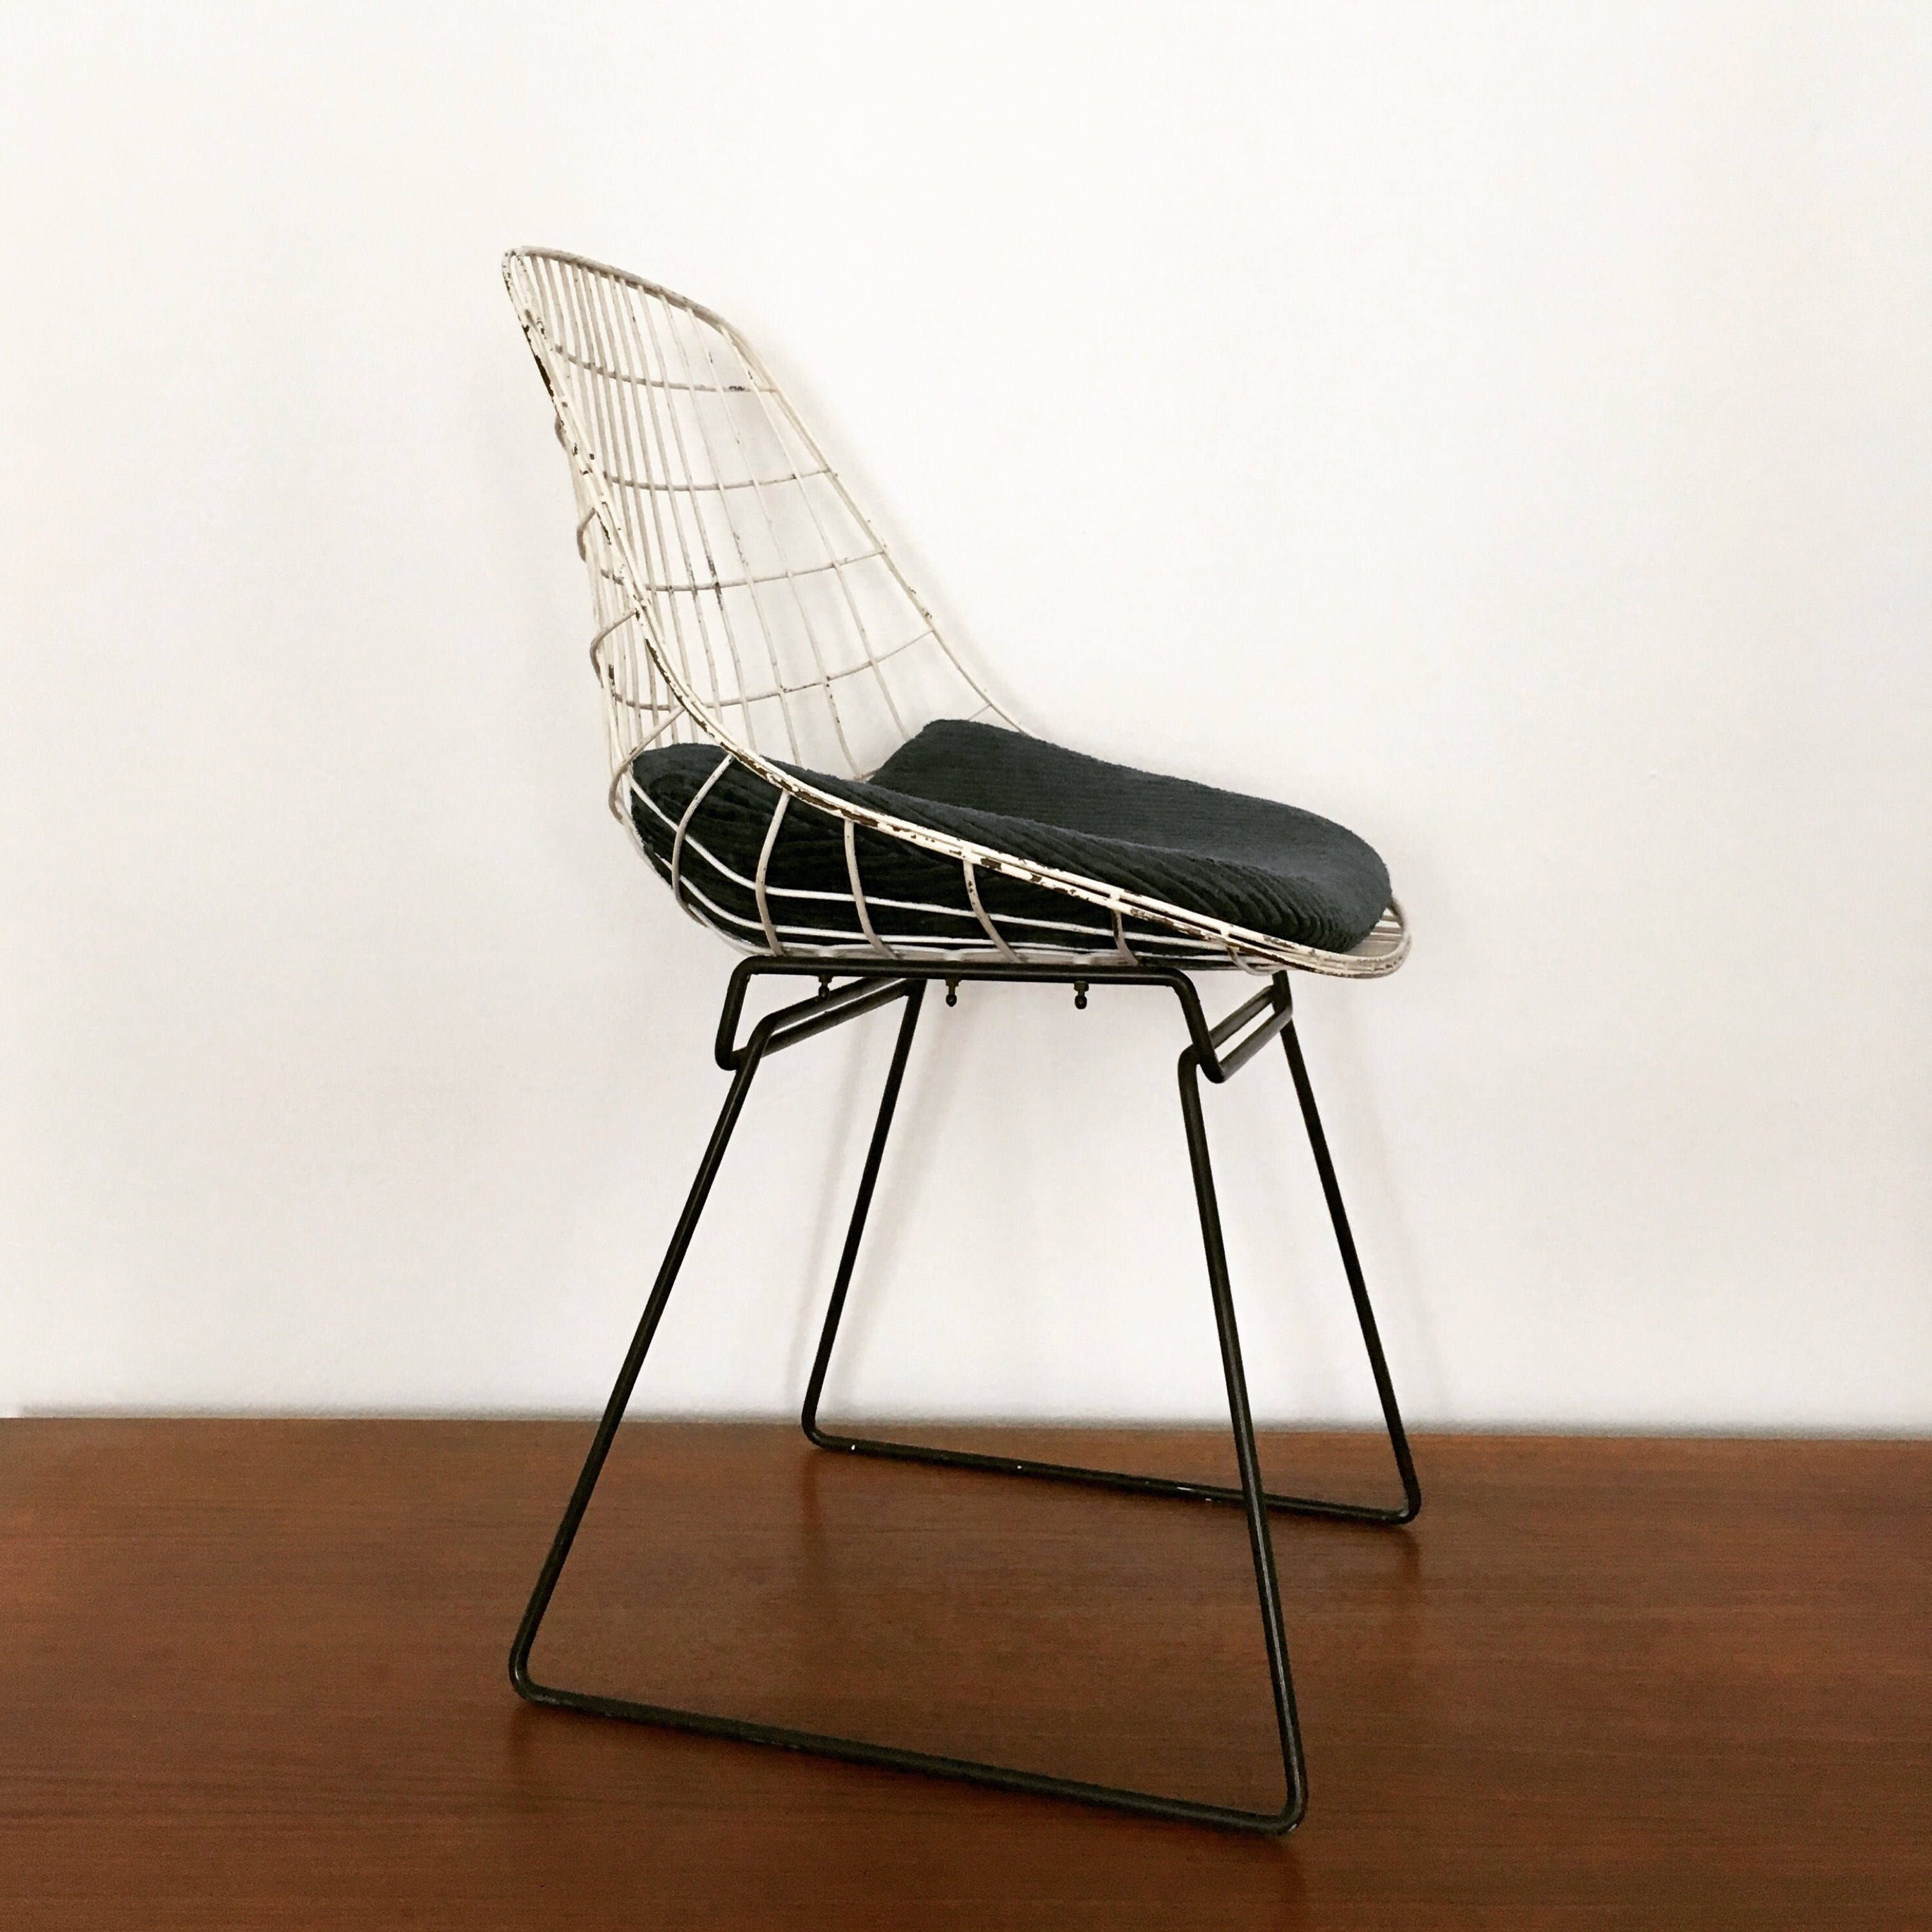 early and extremely beautiful harry bertoia side chair by knoll